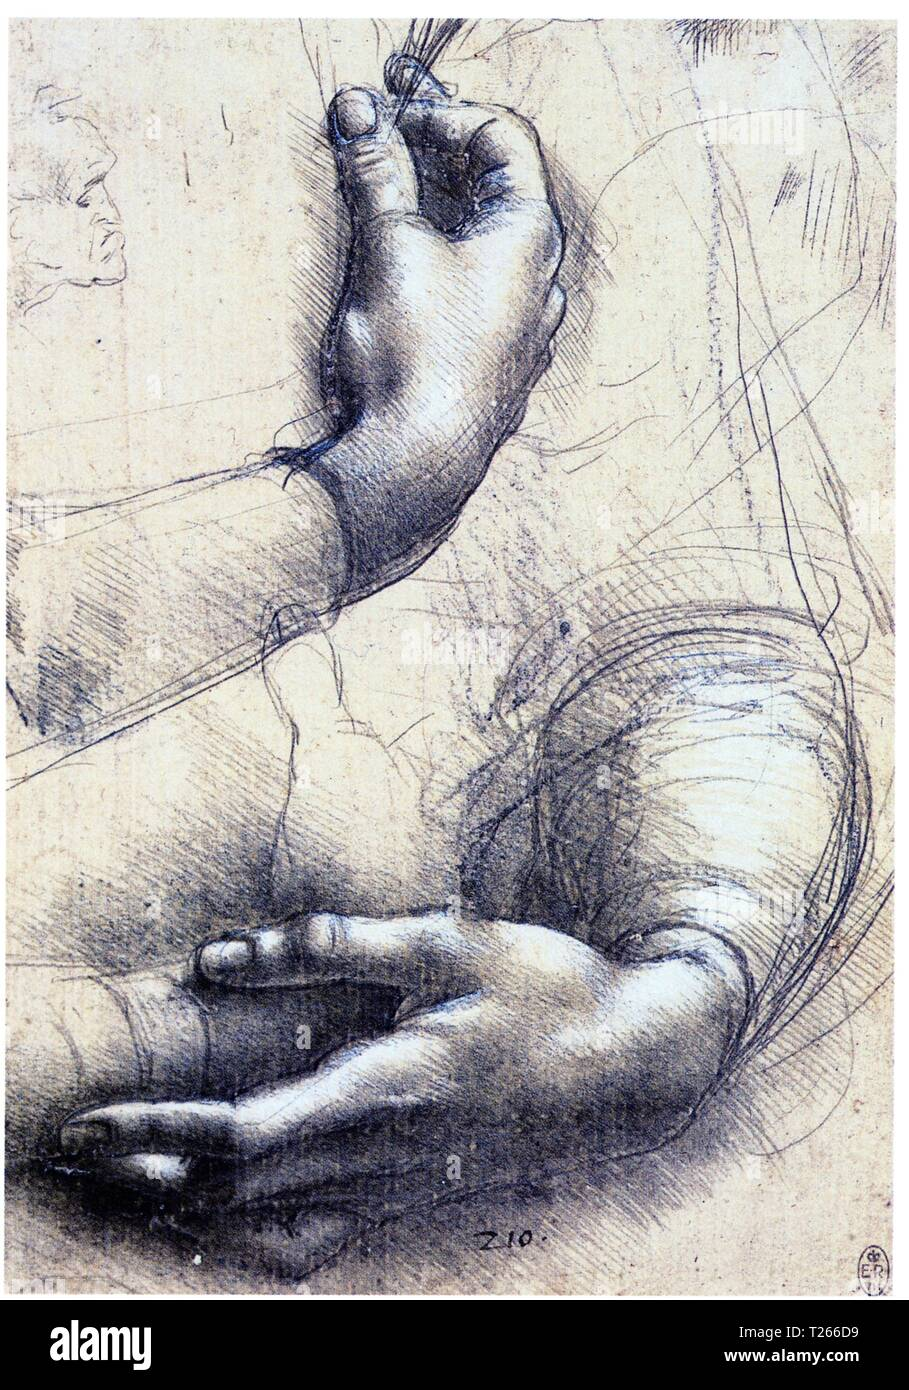 LEONARDO DA VINCI.STUDY OF ARMS AND HANDS.1474.SILVERPOINT HEIGHTENED WITH WHITE ON PINK PREPARED PAPER.214X150 MM - Stock Image